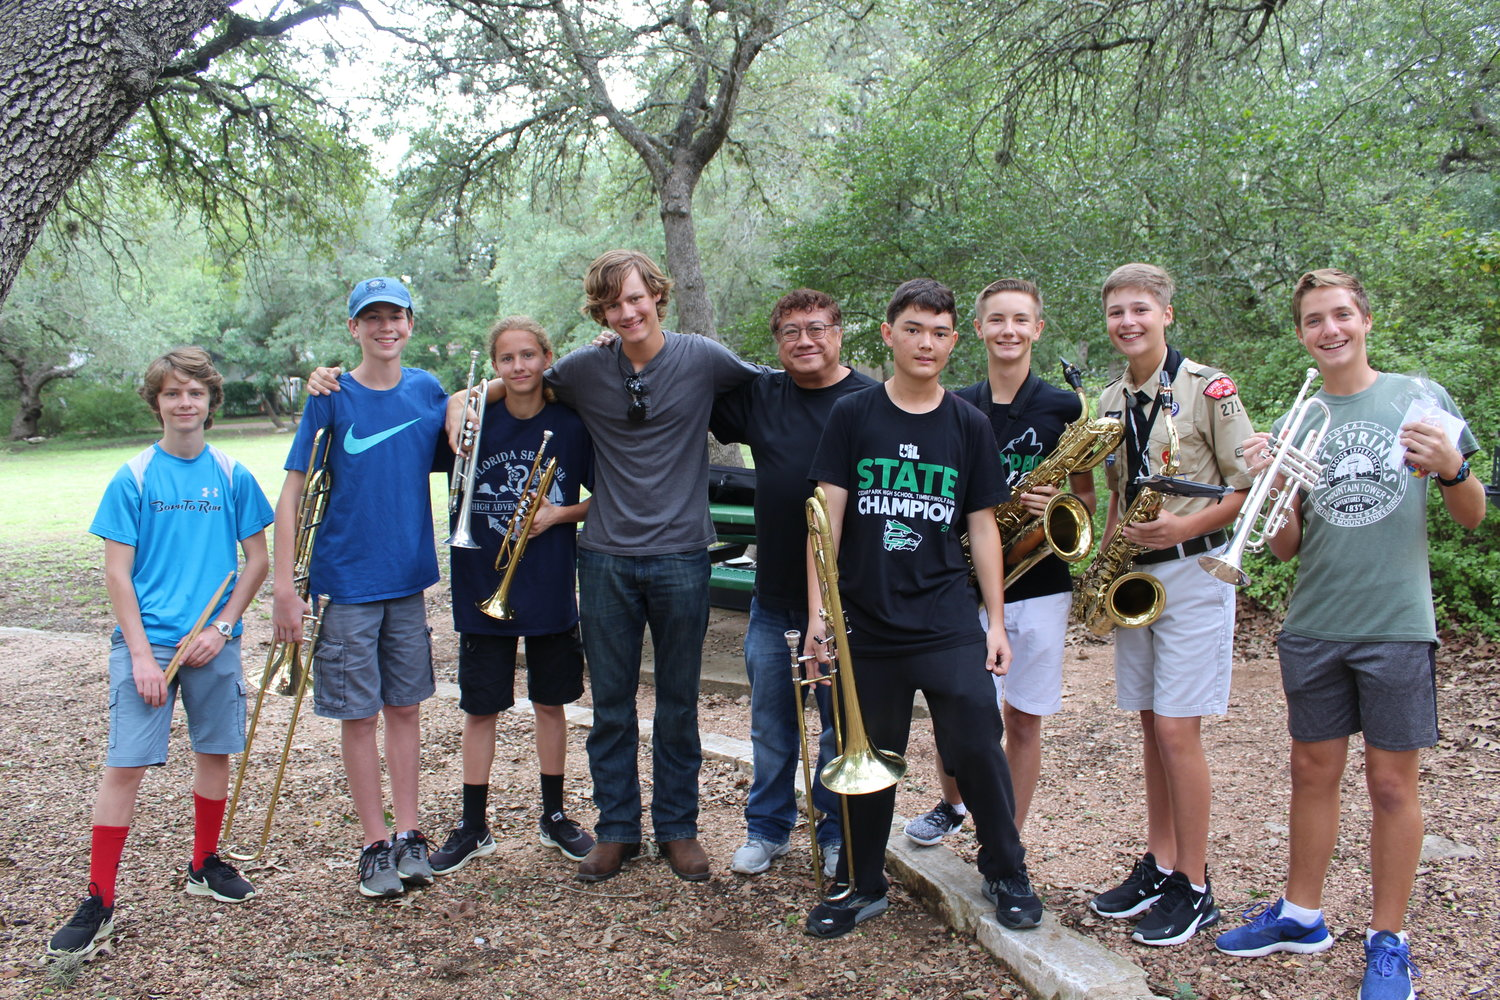 From left to right, Hunter Ryan, eighth grade CPMS percussion; Collin Borenstein, ninth grade CPHS trombone; Casey Ryan, ninth grade CPHS trumpet; Brendan Ryan, 12th grade CPHS trumpet; retired CPMS band director Manuel San Luis; Alex Mai, 10th grade CPHS trombone; Vladik Lebedev, 10th grade CPHS baritone sax; Will Lambert, 10th grade CPHS tenor sax; Davis Perron, 10th grade CPHS trumpet.